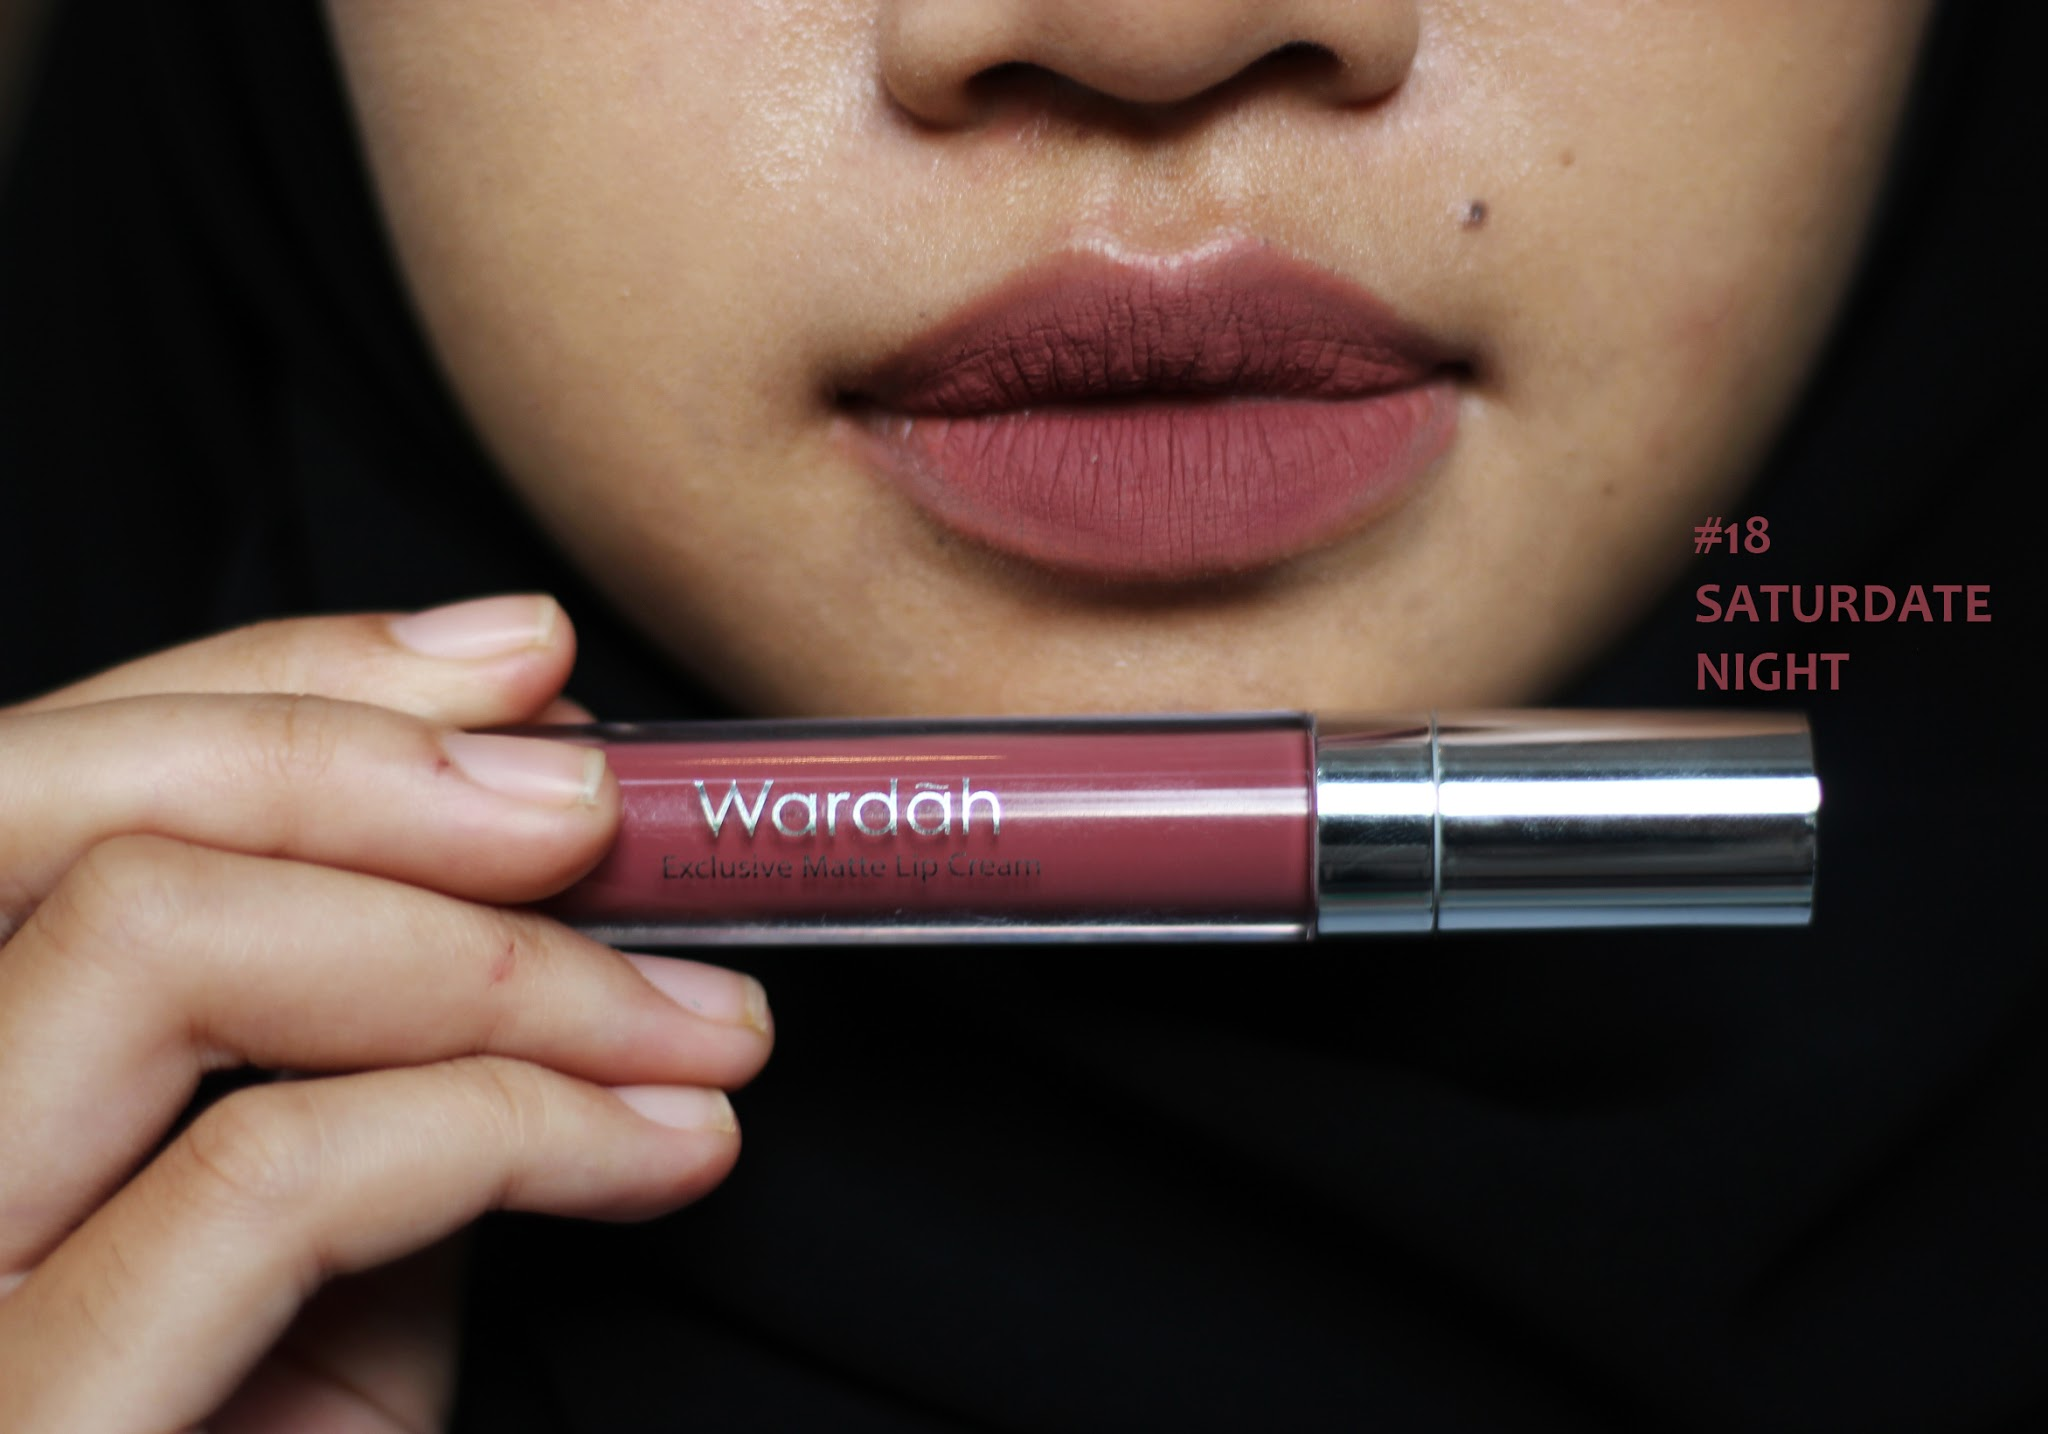 Wardah Exclusive Matte Lip Cream New Shades Swatches Lovelia By